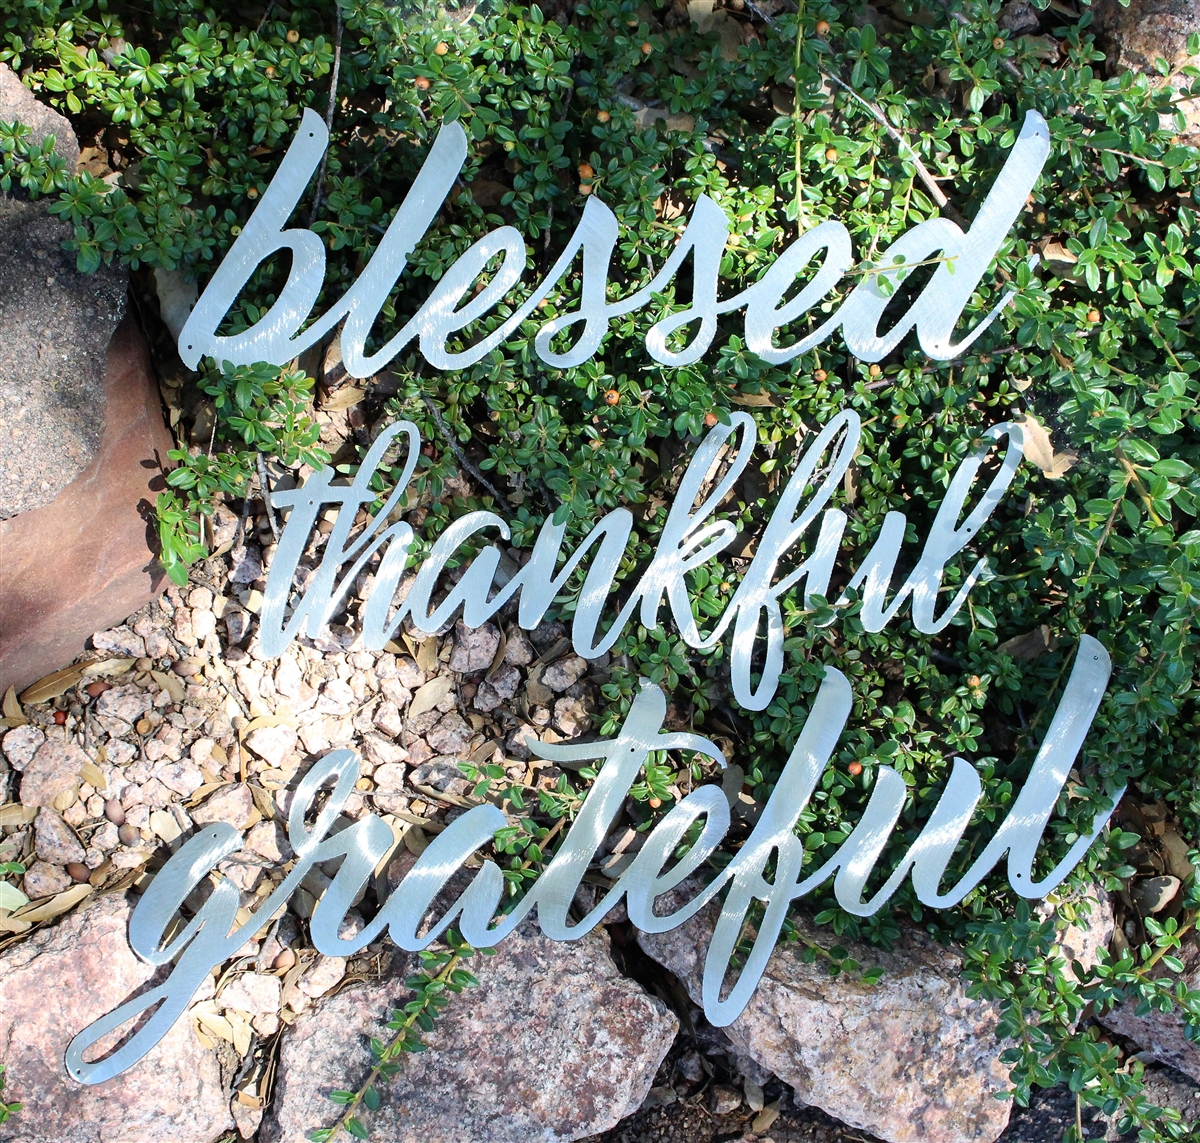 Thankful Grateful Blessed Metal Wall Art Decor Regarding Most Recently Released Blessed Steel Wall Decor (View 10 of 20)